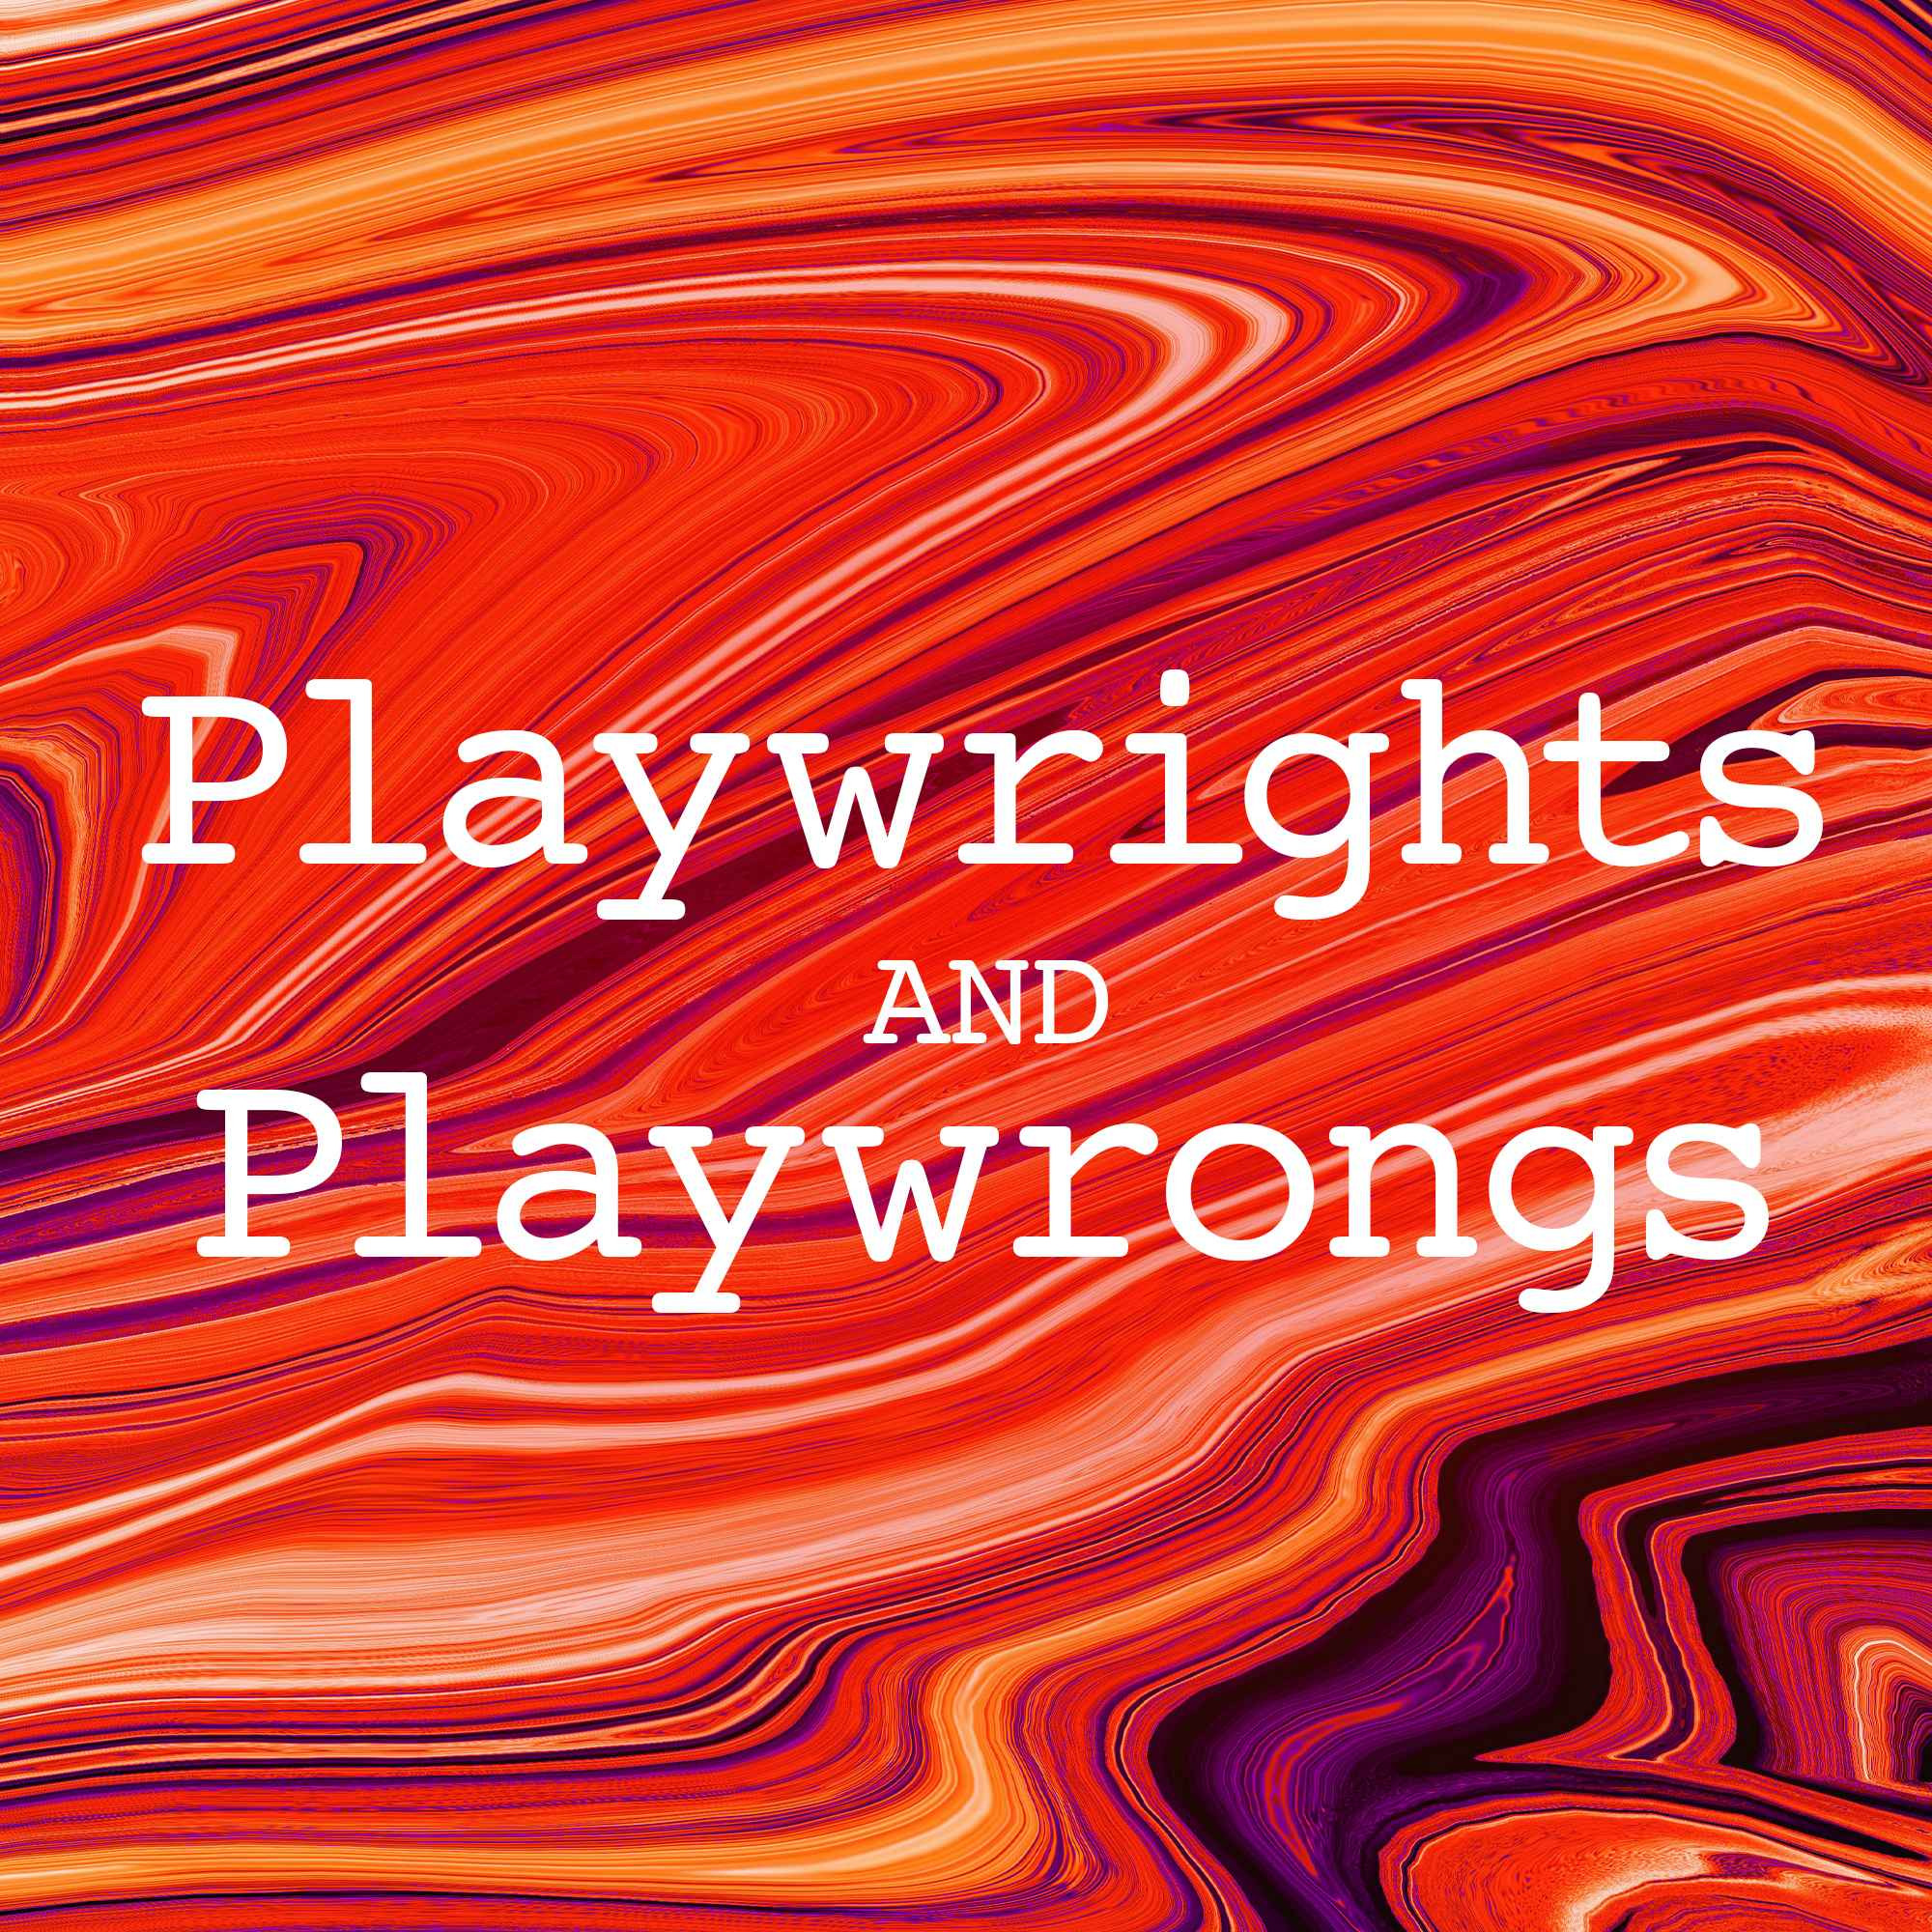 Playwrights and Playwrongs